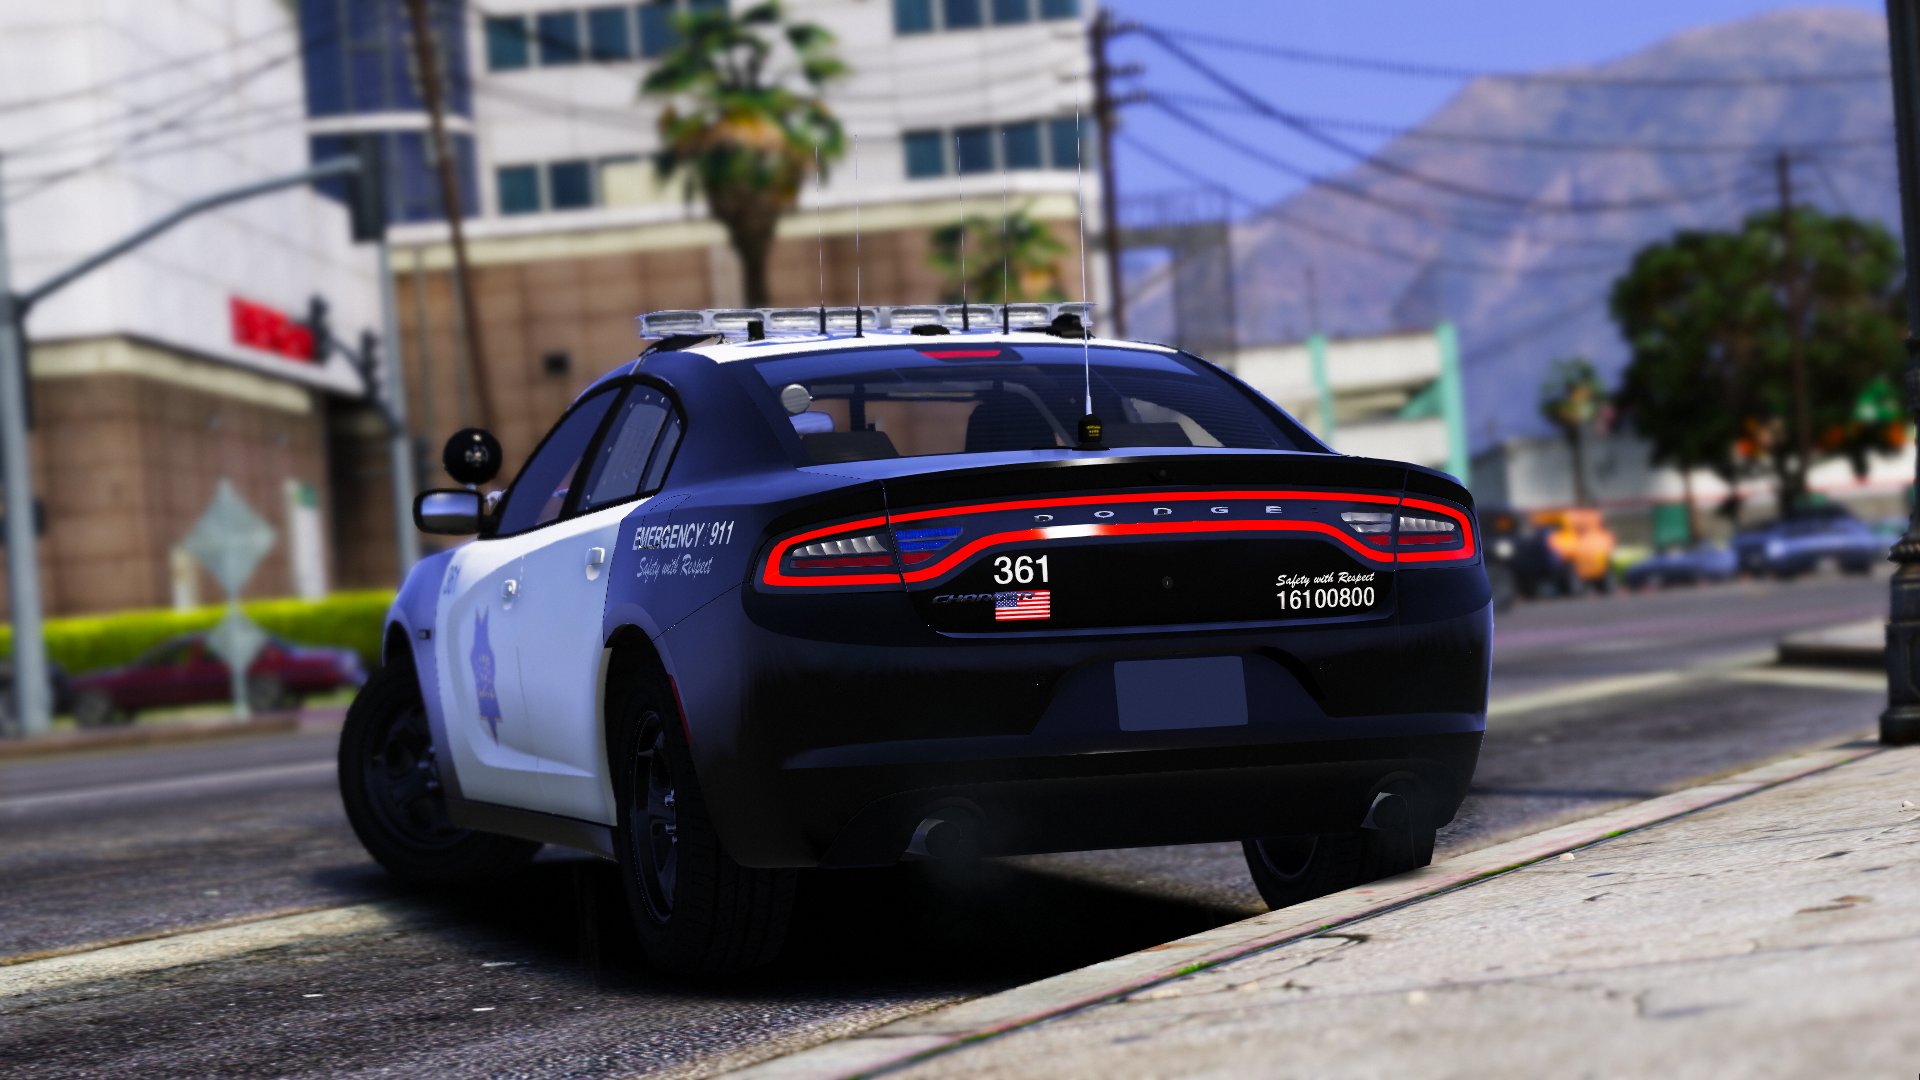 LSPD Patrol Charger